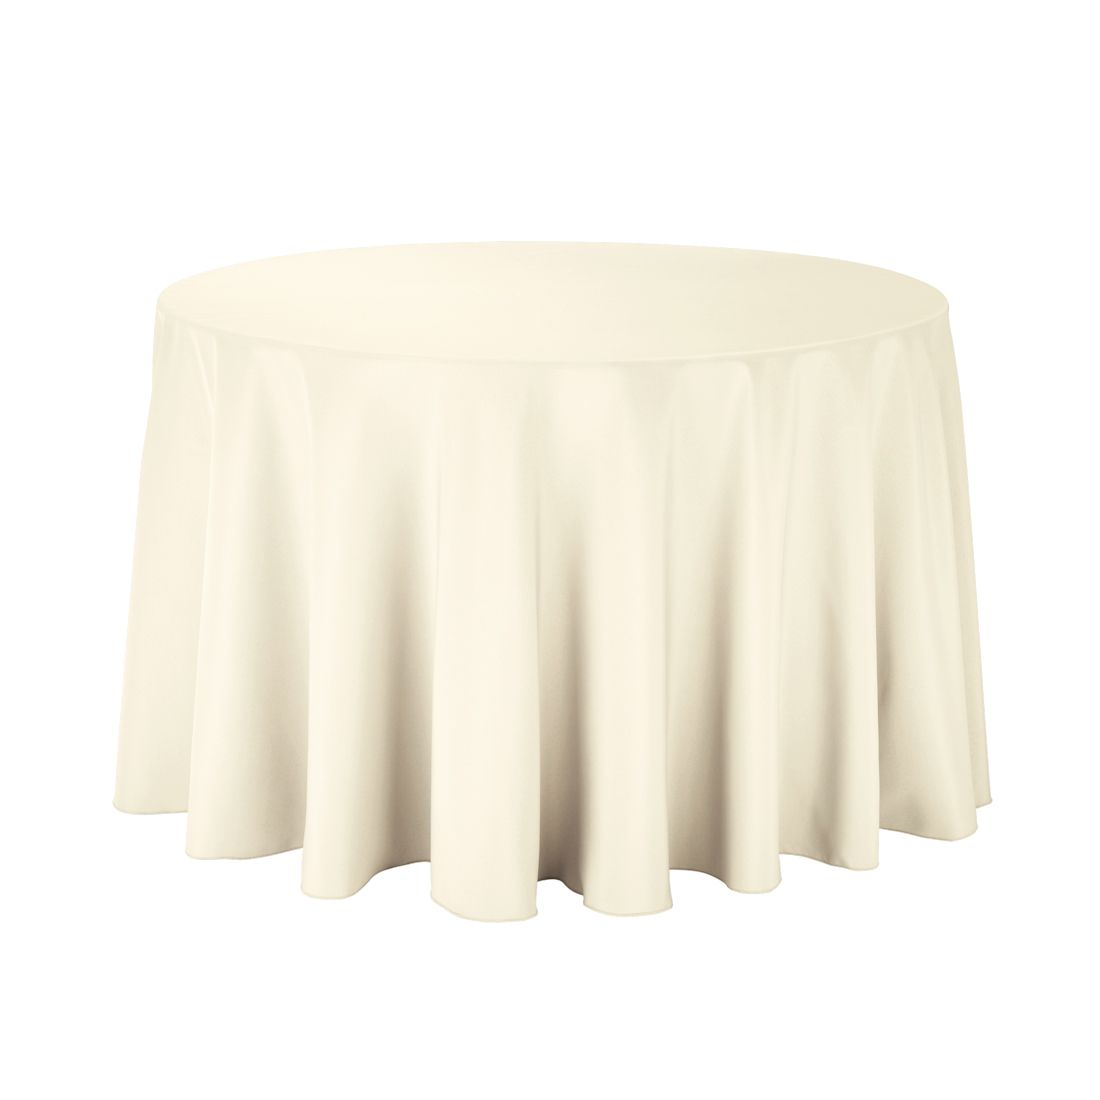 108 In Round Economy Polyester Tablecloth Ivory White Table Cloth Table Cloth Round Table Covers